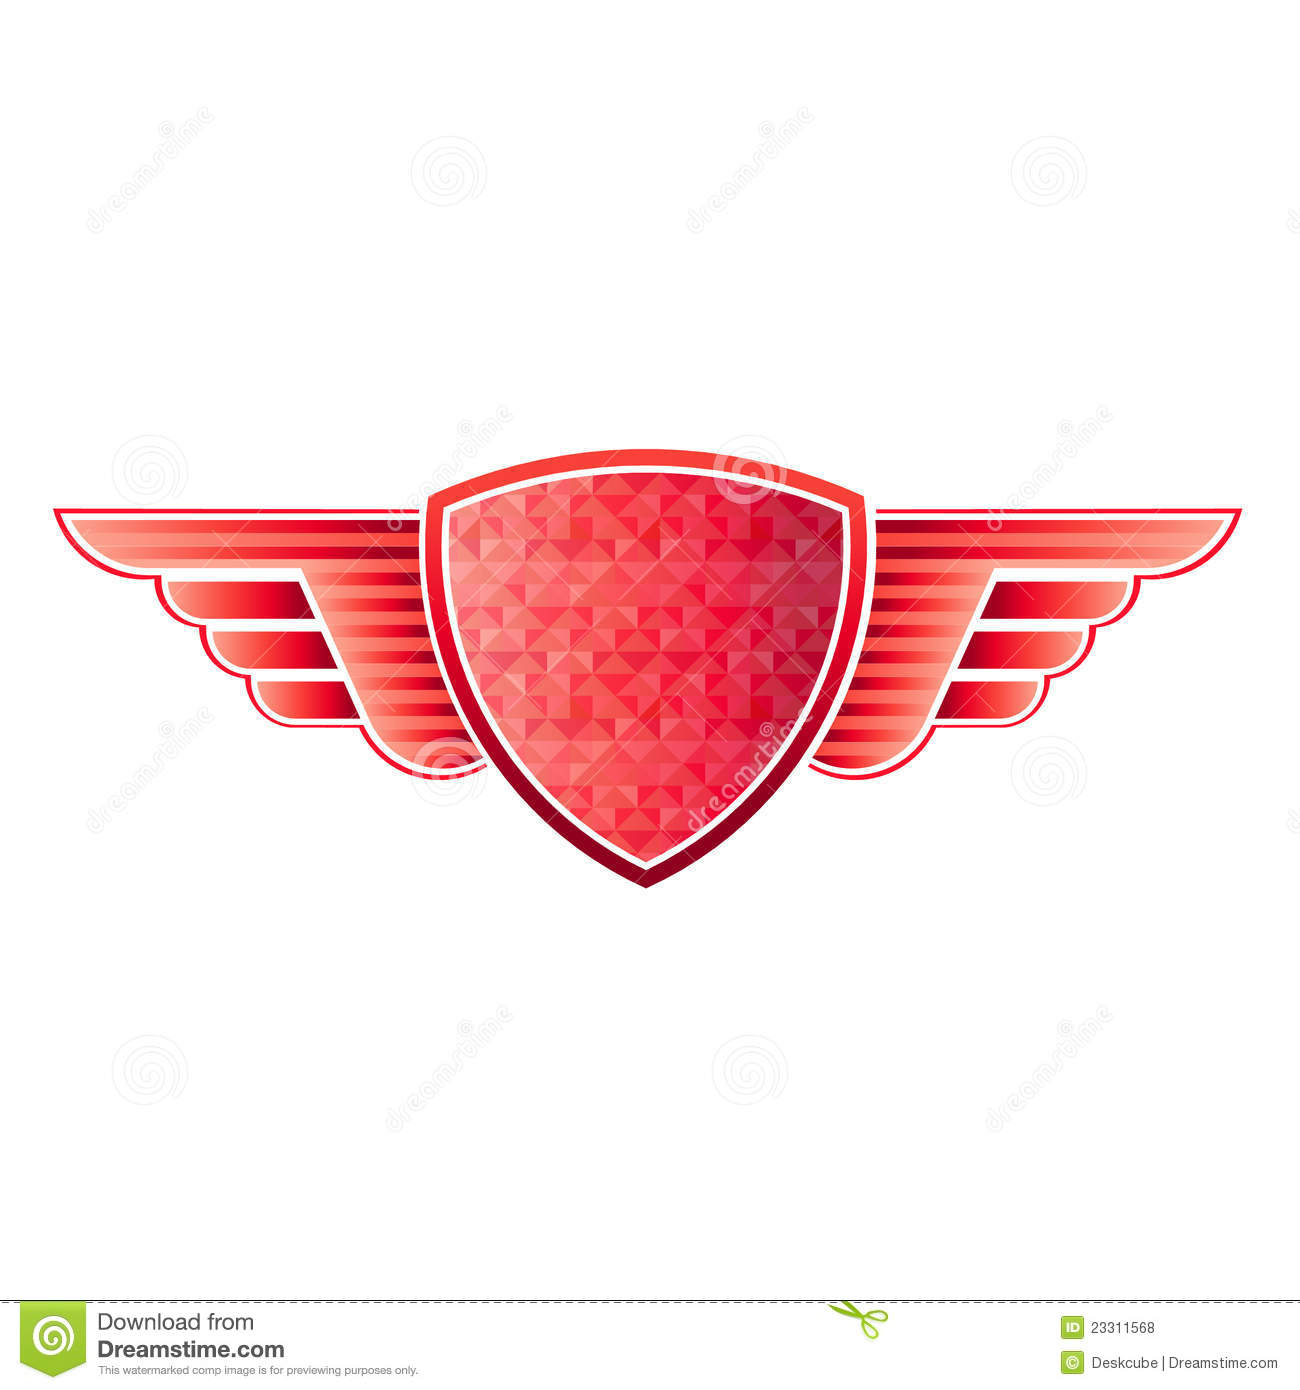 Red shield wings logo stock illustration. Illustration of ...